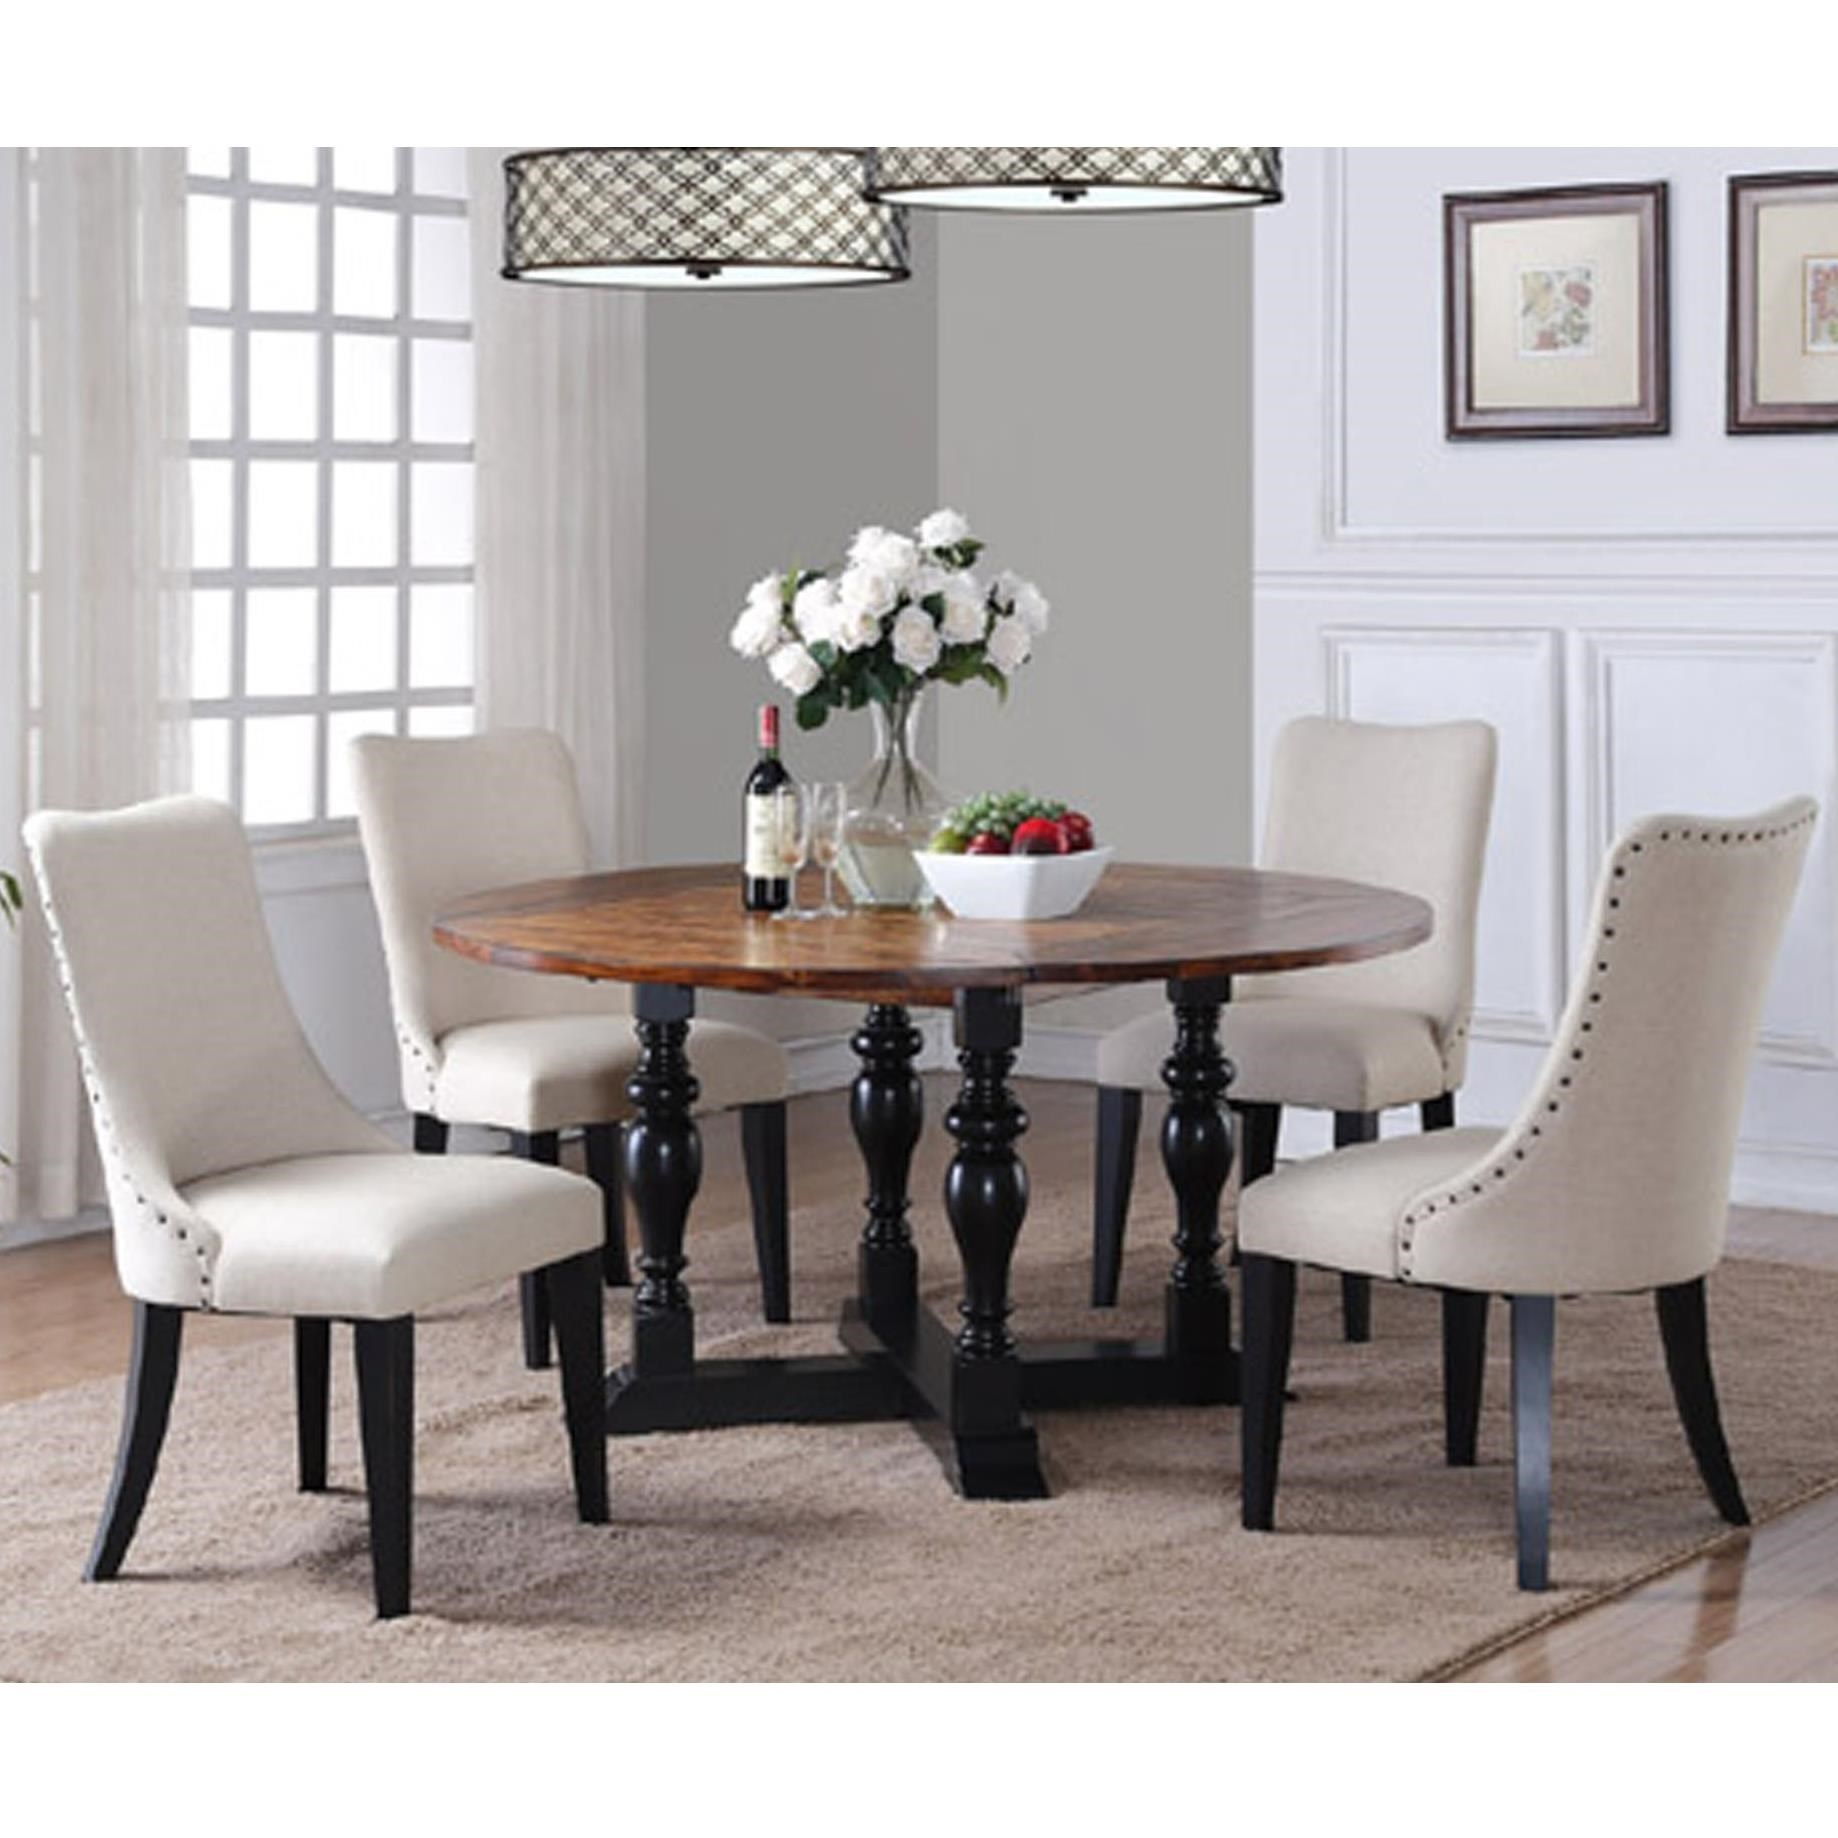 Winners ly Weston 5 Piece Dining Set with Drop Leaf